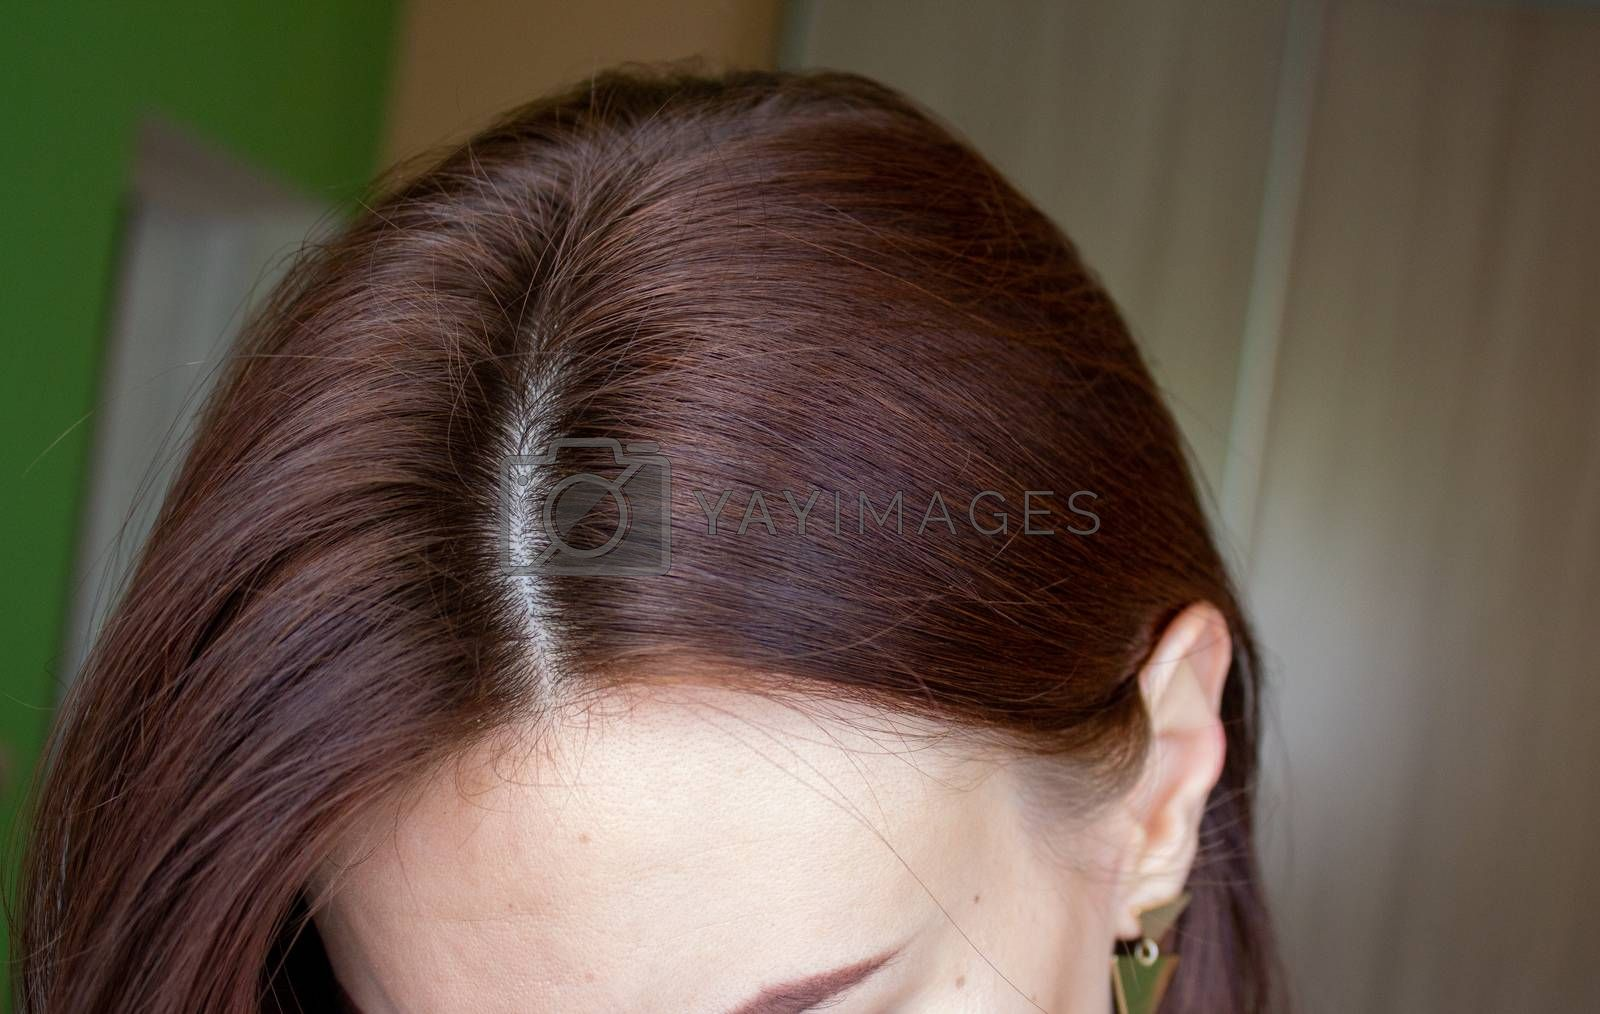 hair on a woman's head close-up. Hair brown color of